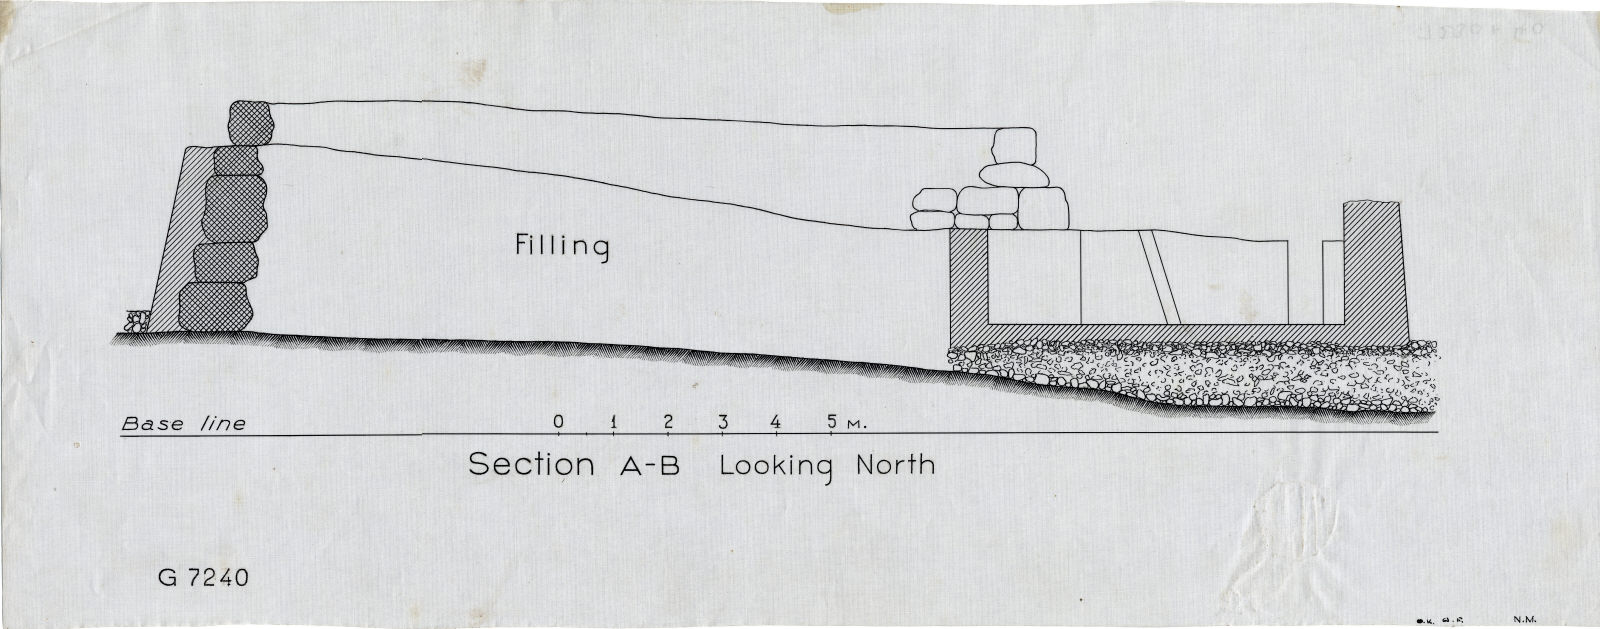 Maps and plans: Section of G 7240